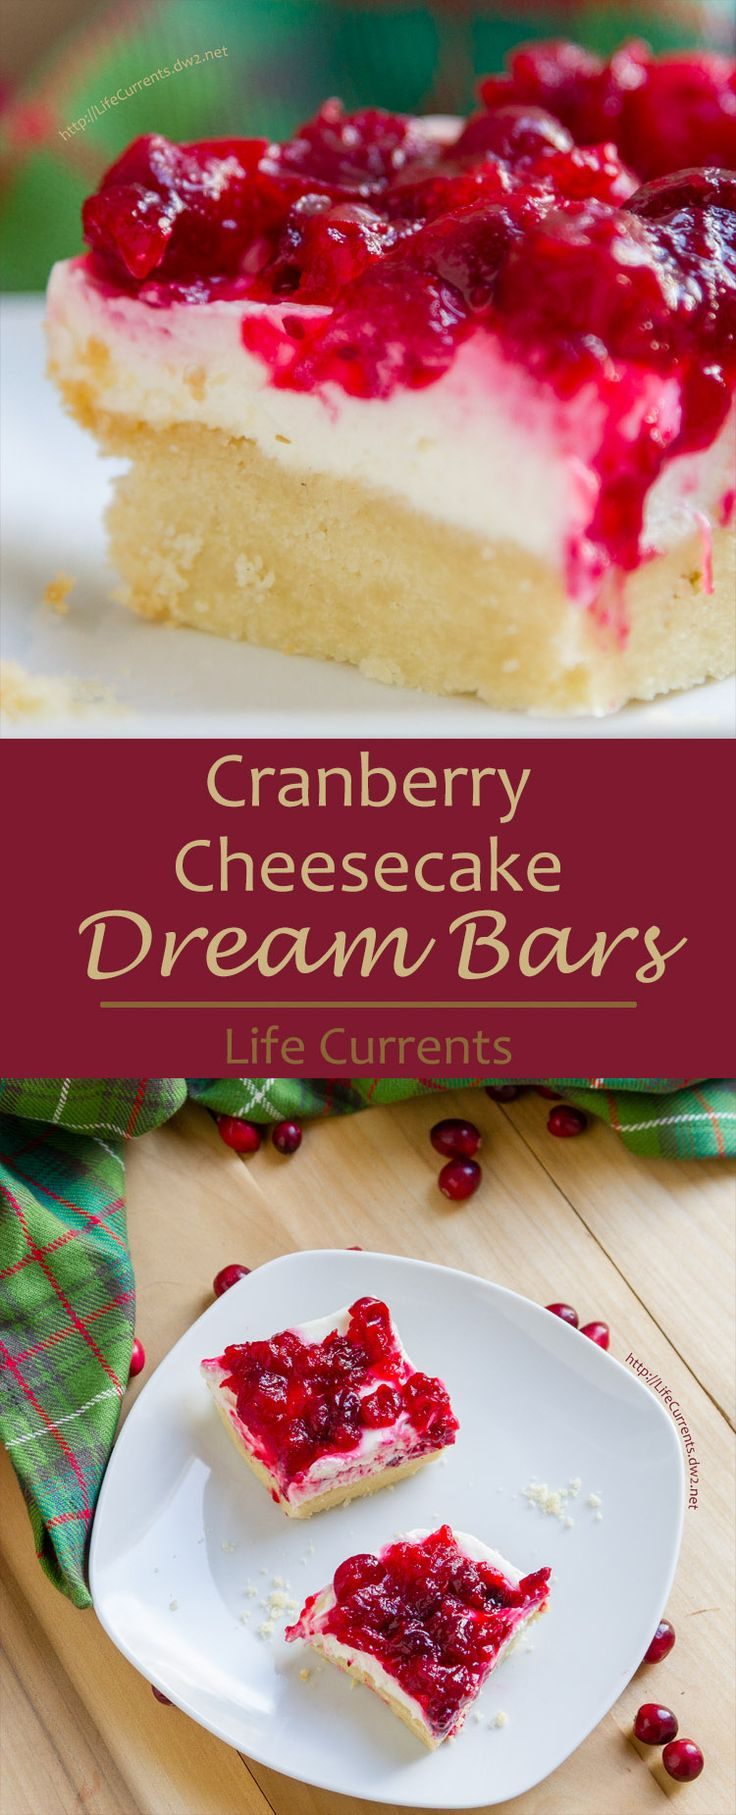 Best 25+ Cranberry cheesecake ideas on Pinterest ...